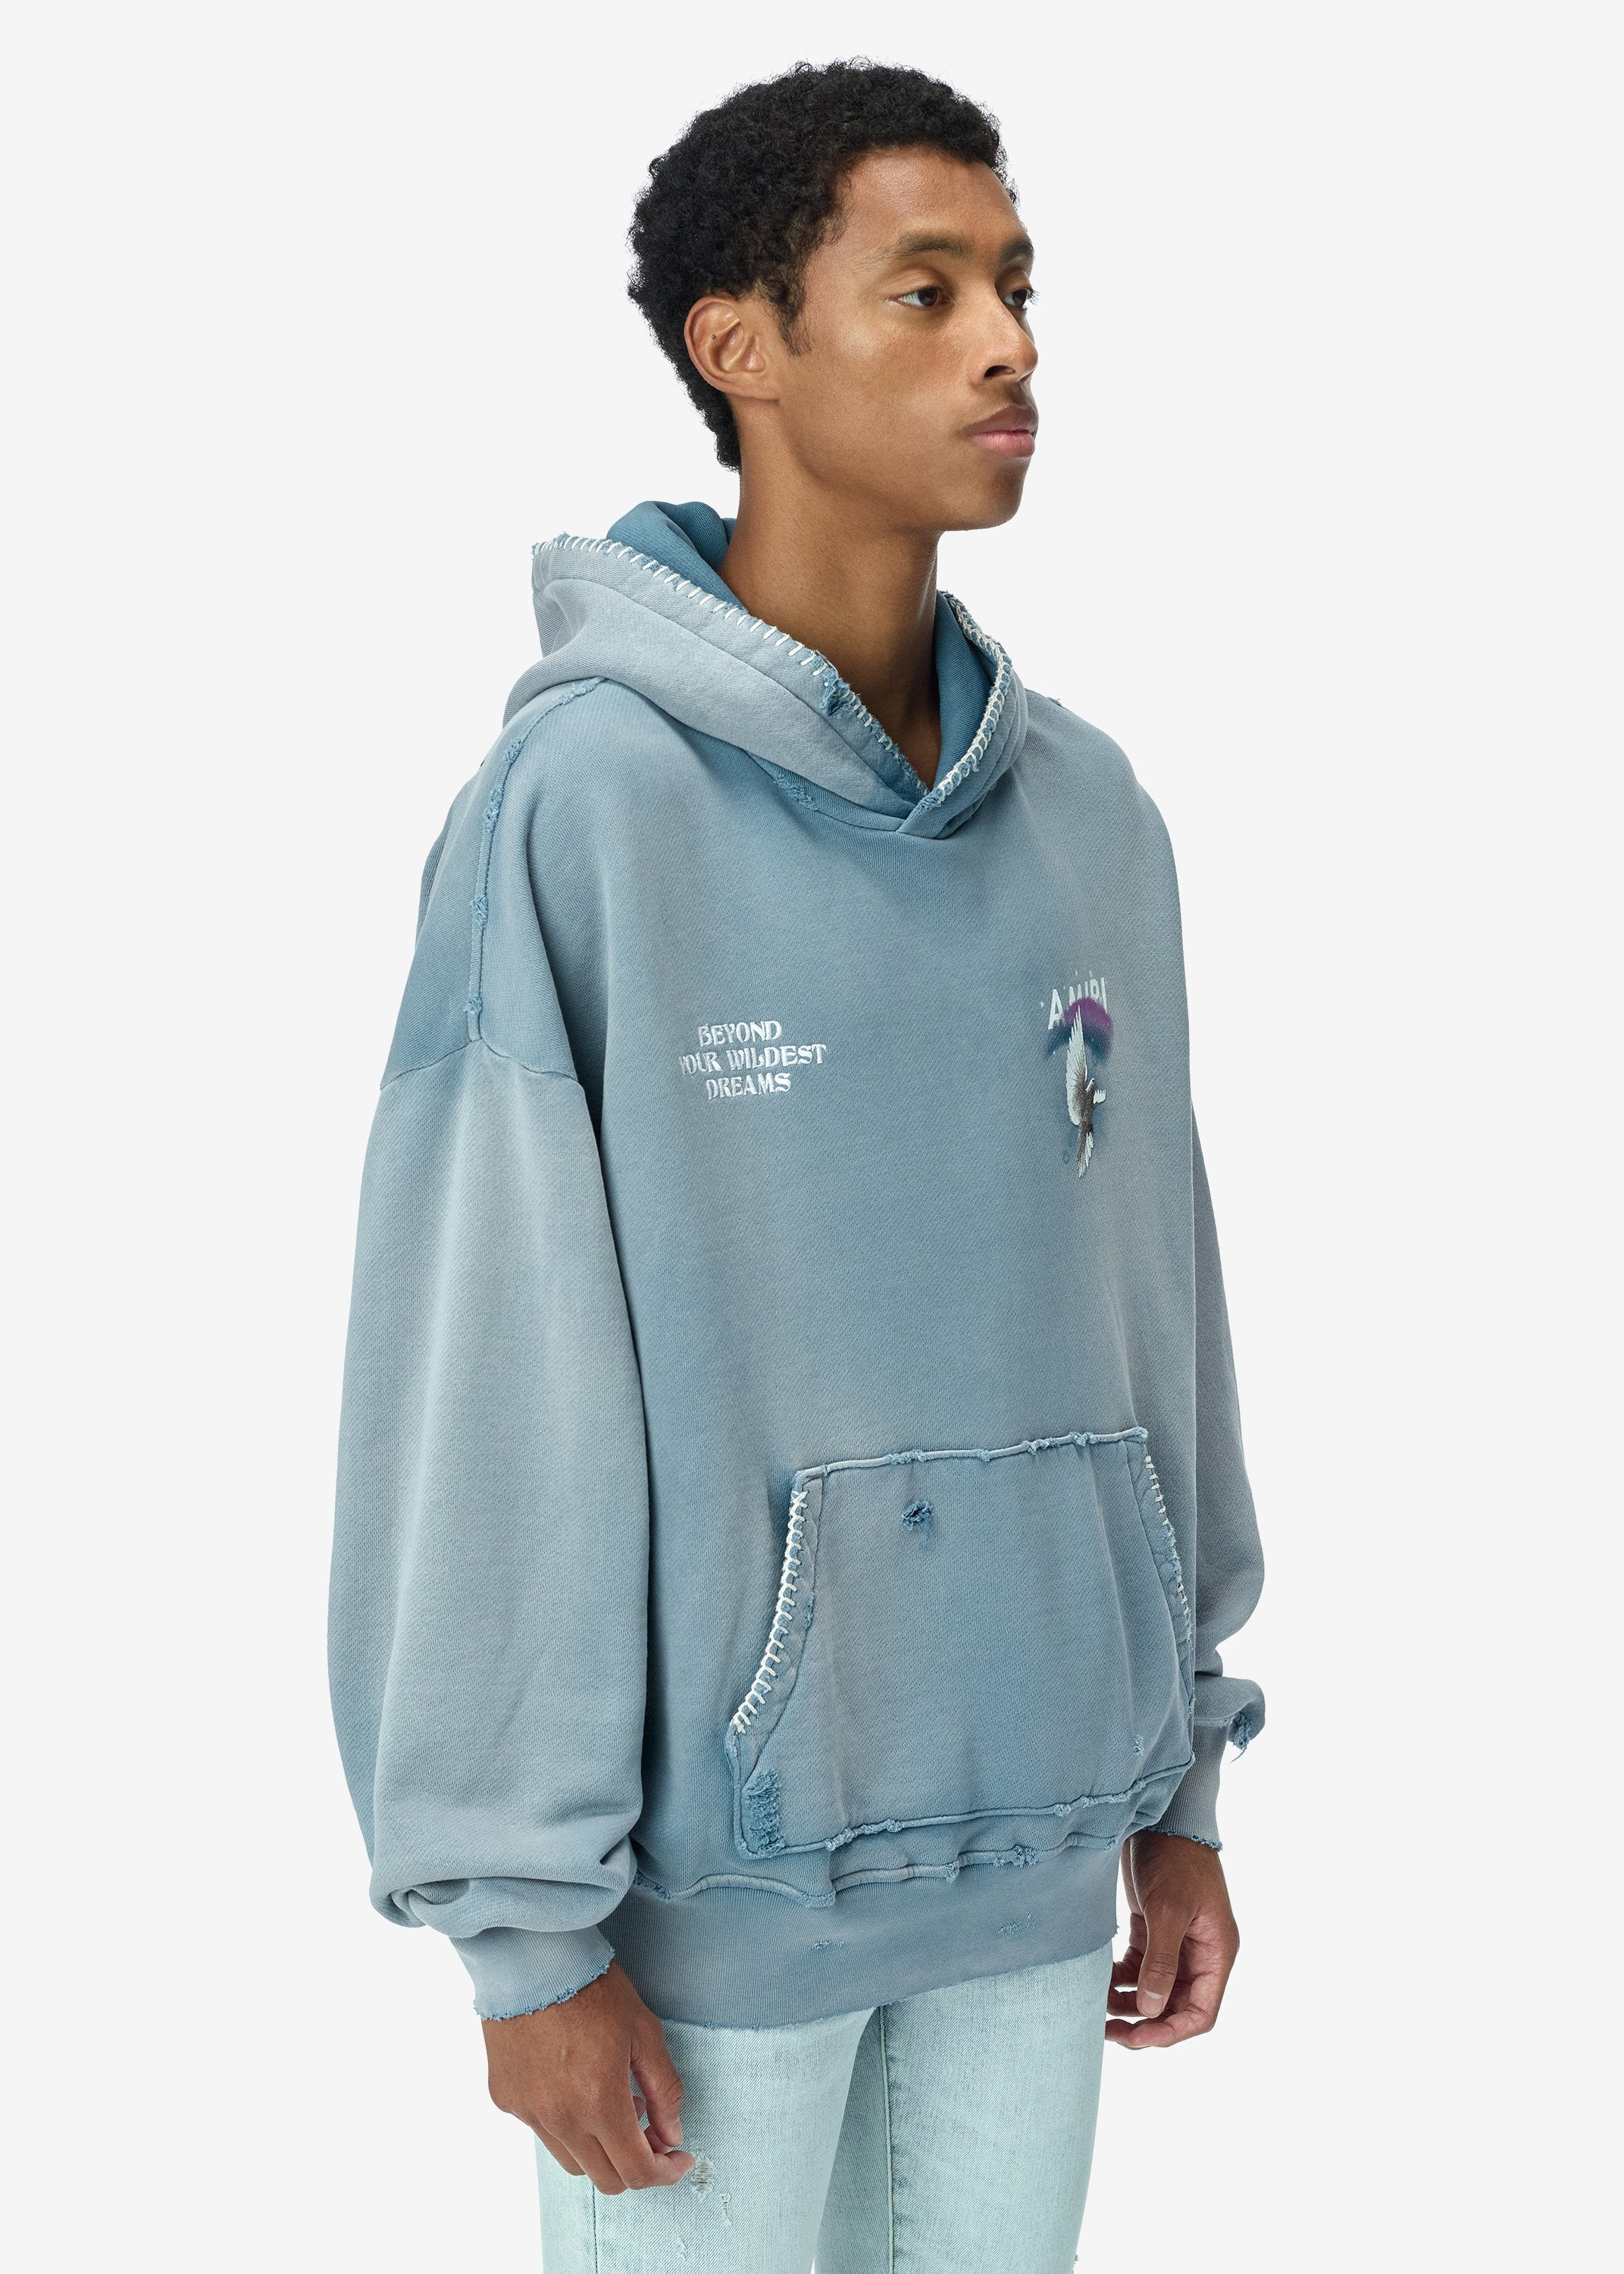 oversized-eternal-dove-hoodie-washed-cobalt-image-2